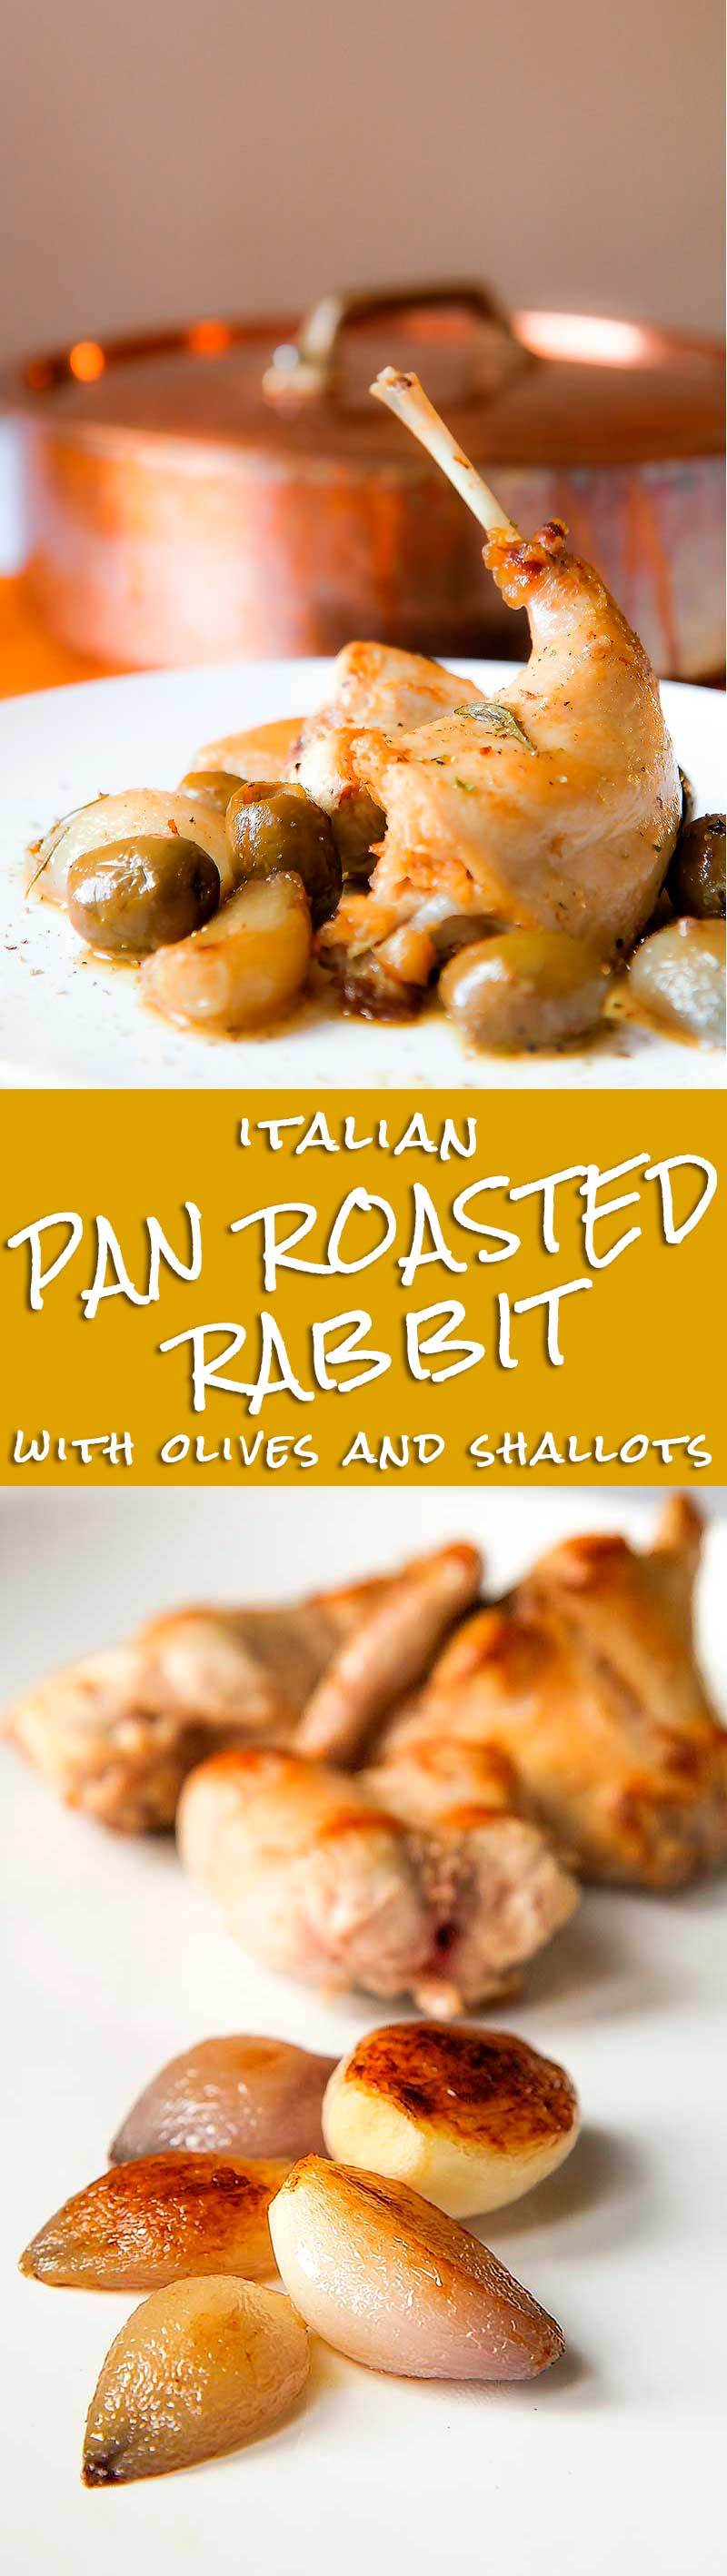 PAN ROASTED RABBIT with rosemary, shallots and green olives